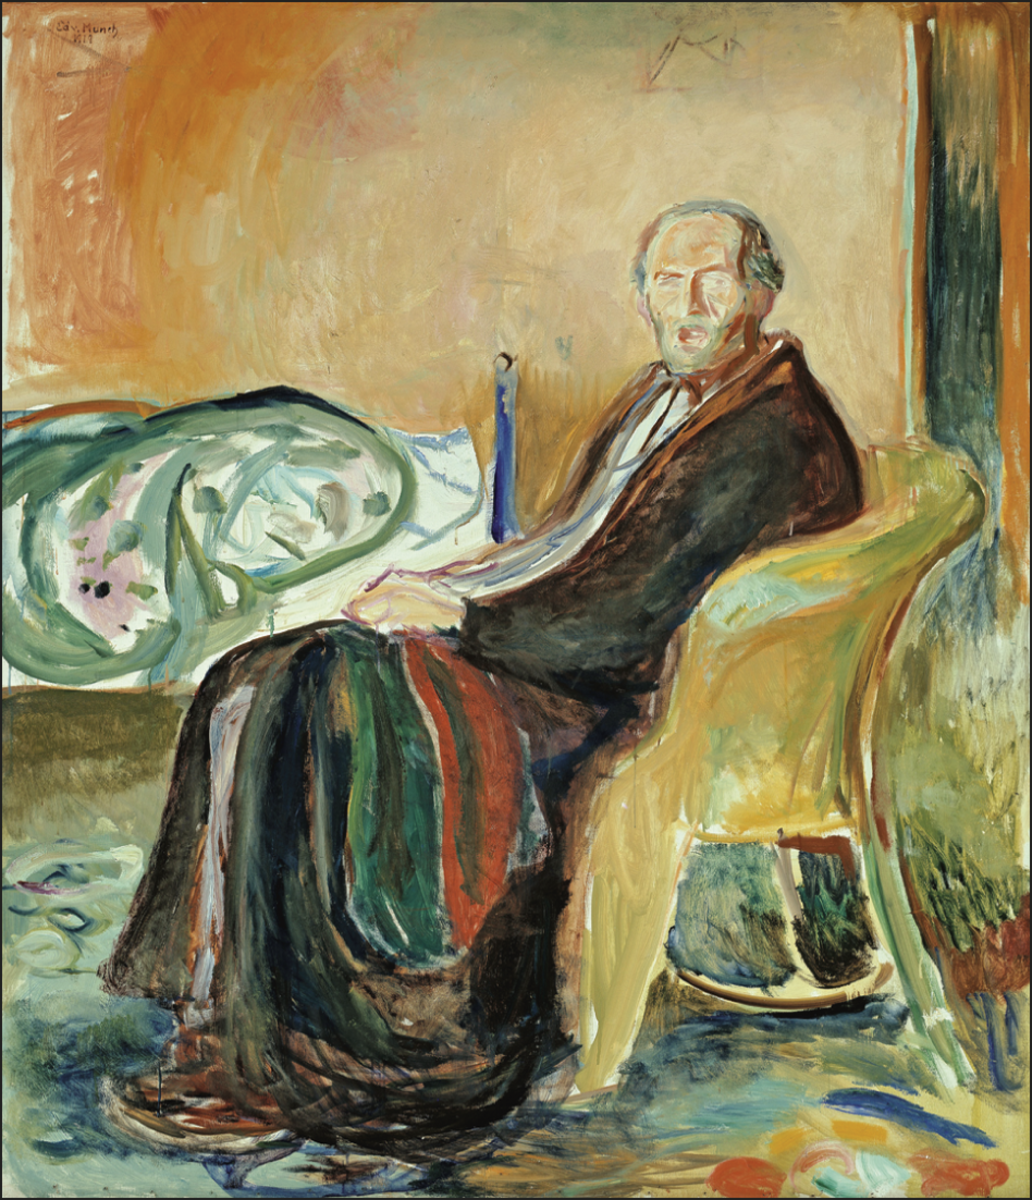 Edvard Munch did this eerie self-portrait in 1918 while undergoing the effects of the Spanish Influenza. Fortunately, he survived the disease.